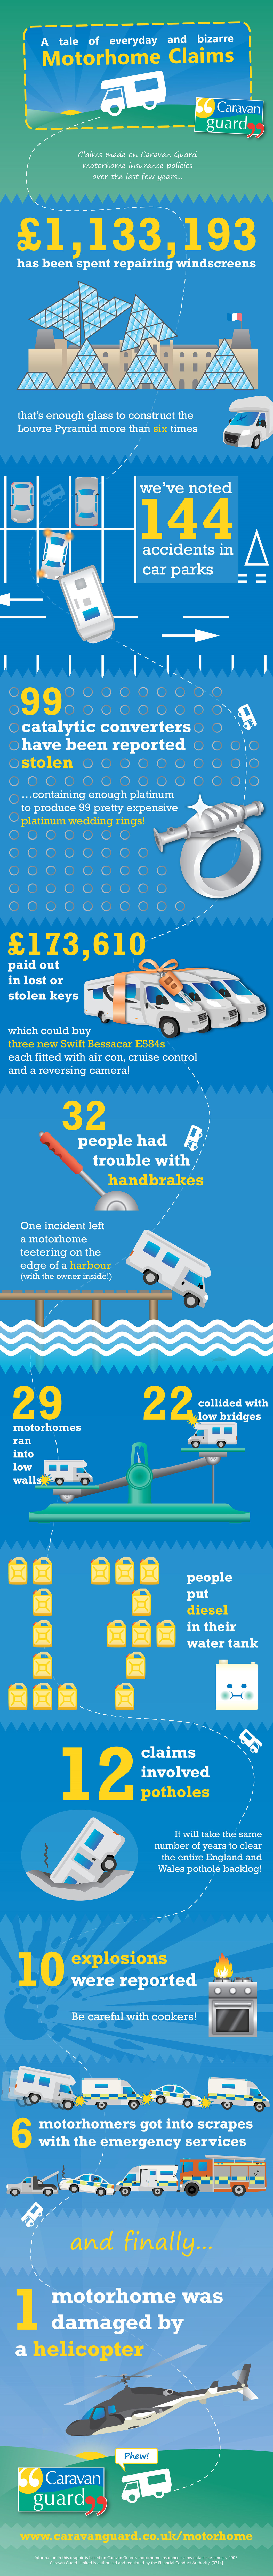 Motorhome insurance claims; from the everyday to the bizarre Infographic